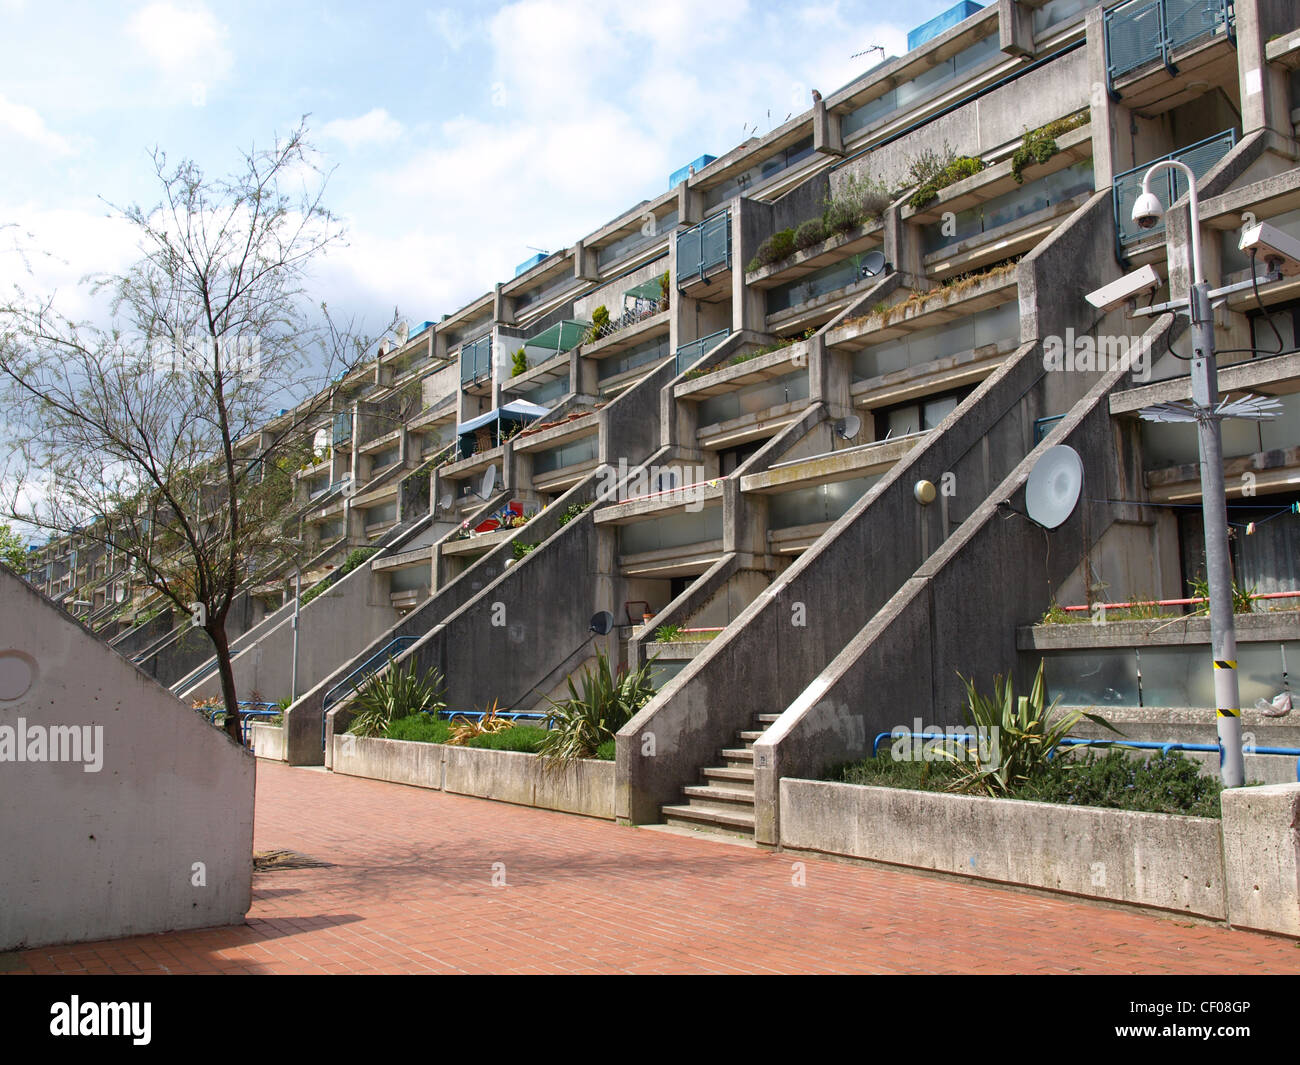 alexandra road housing estate iconic new brutalist architecture in